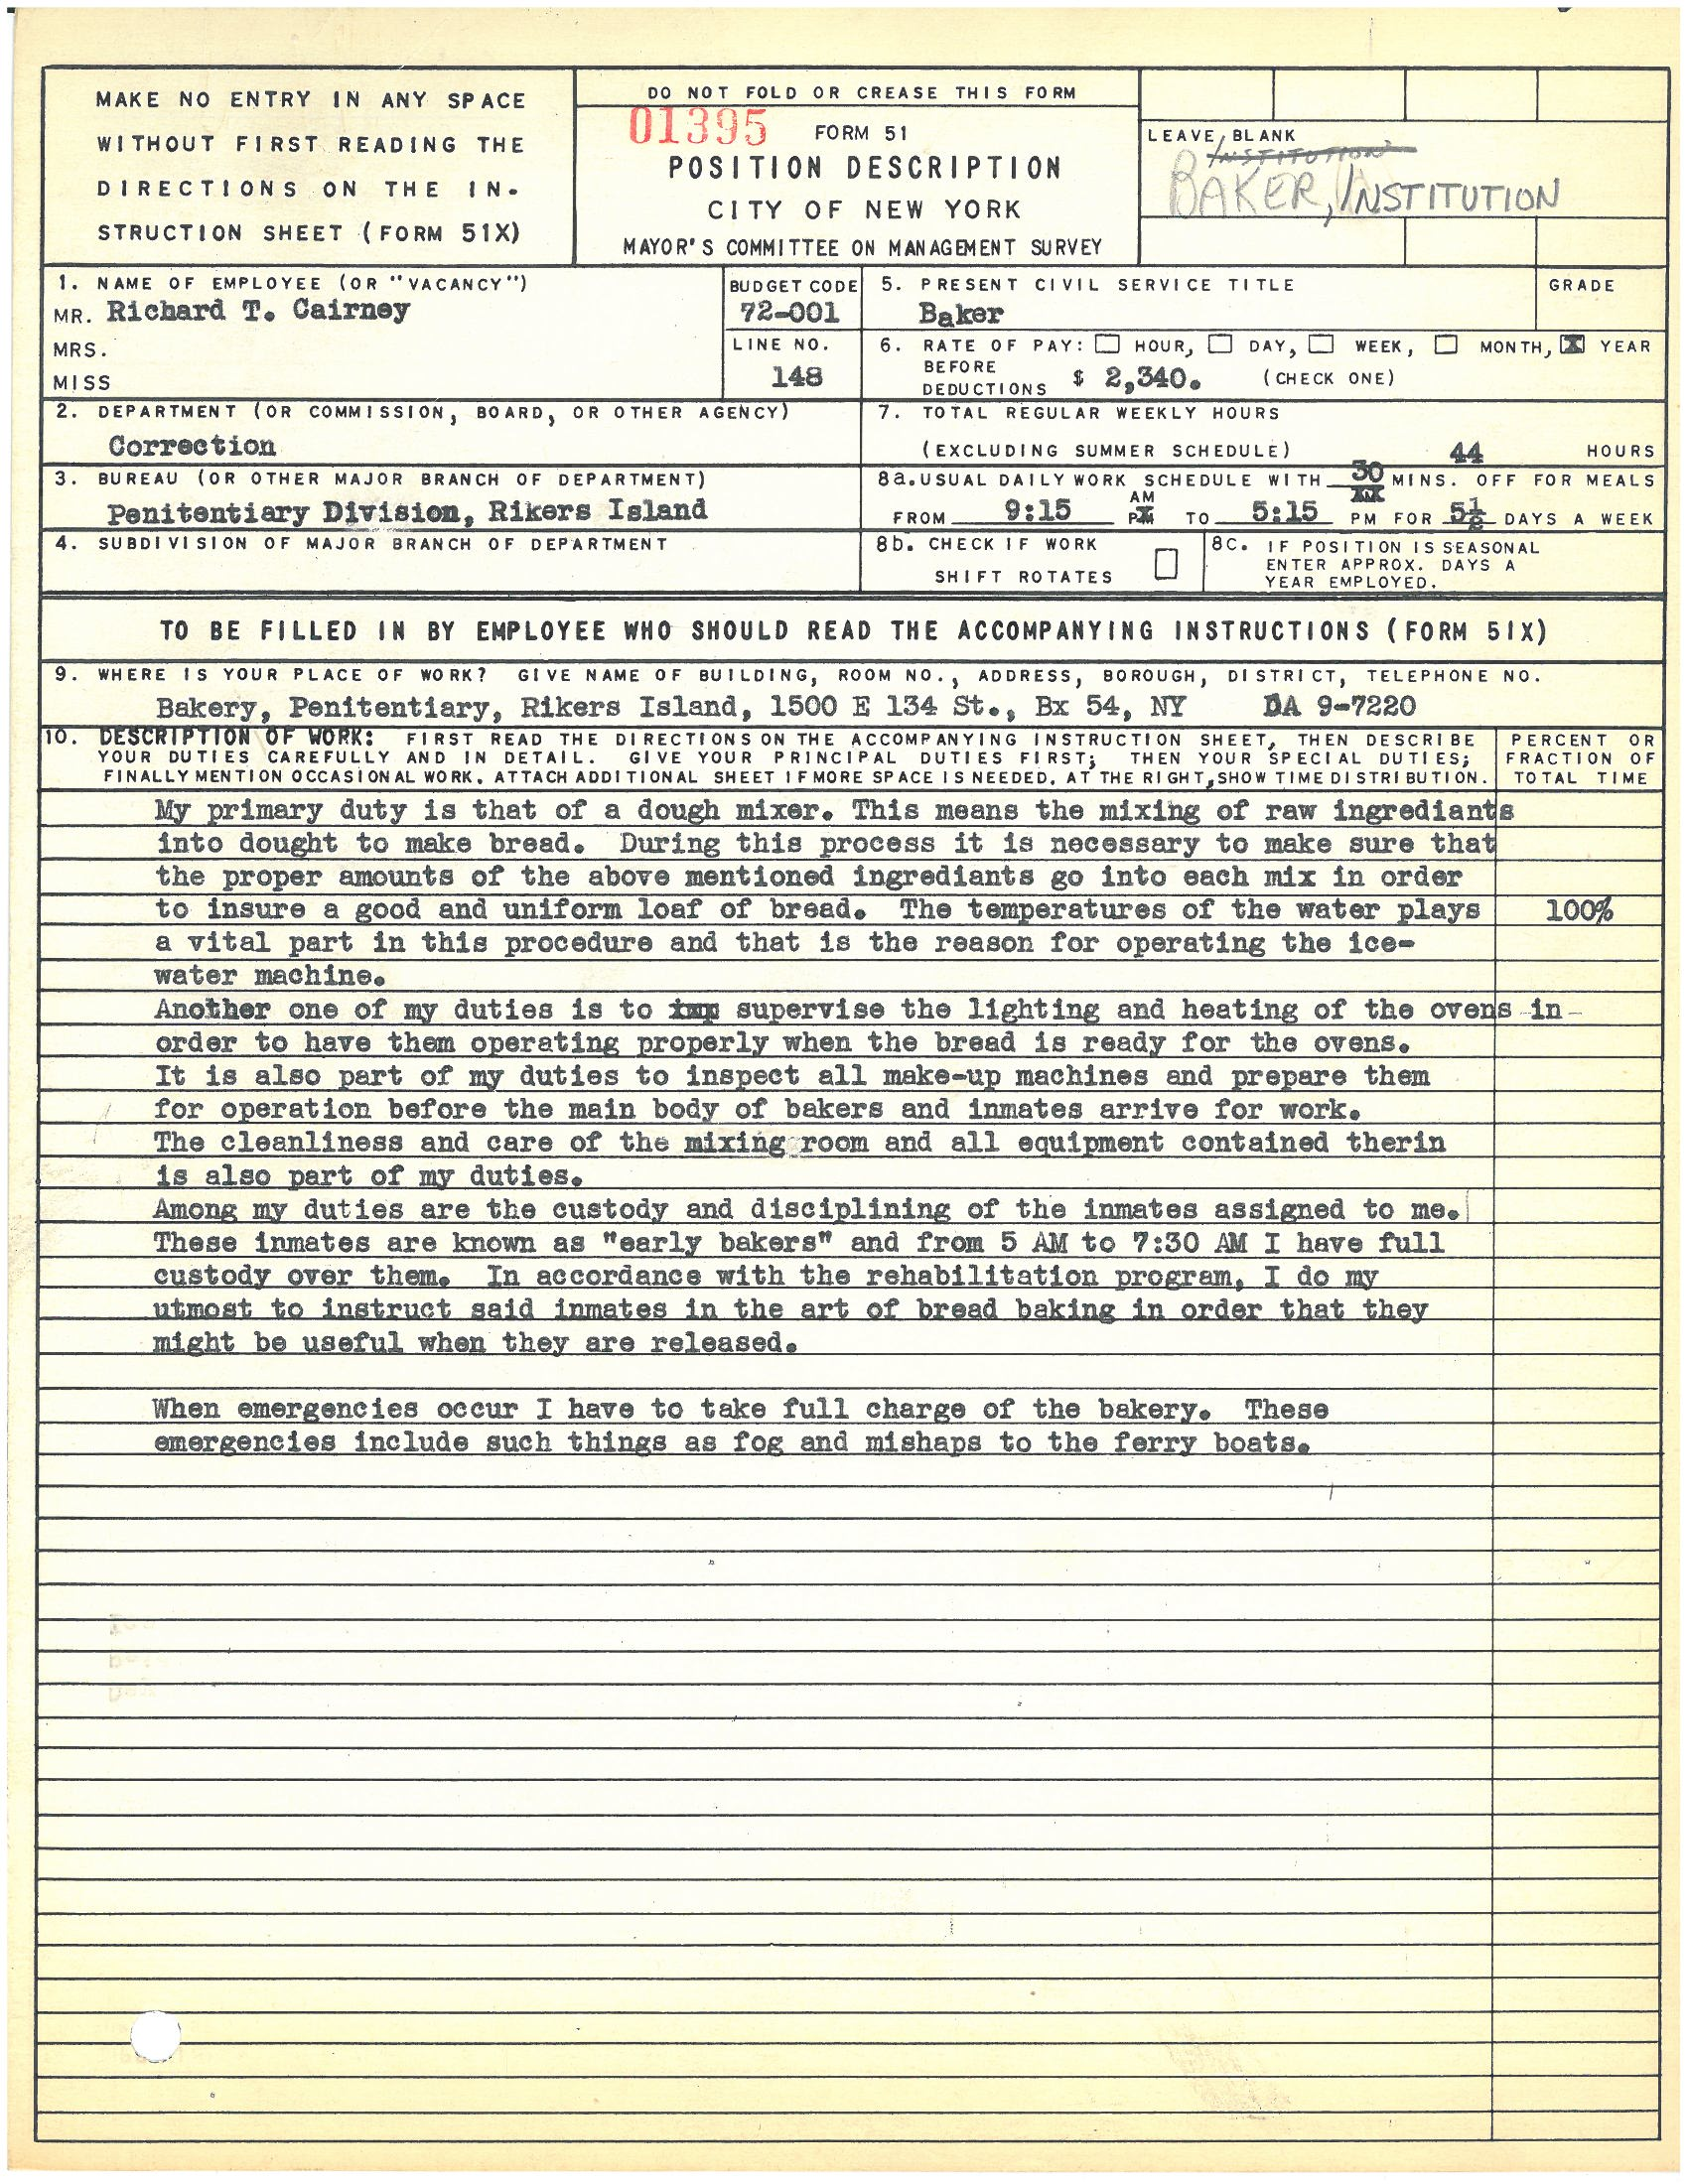 Form 51: Richard T. Cairney, Baker, Rikers Island. Mayor's Committee on Management Survey, circa 1950. NYC Municipal Archives.